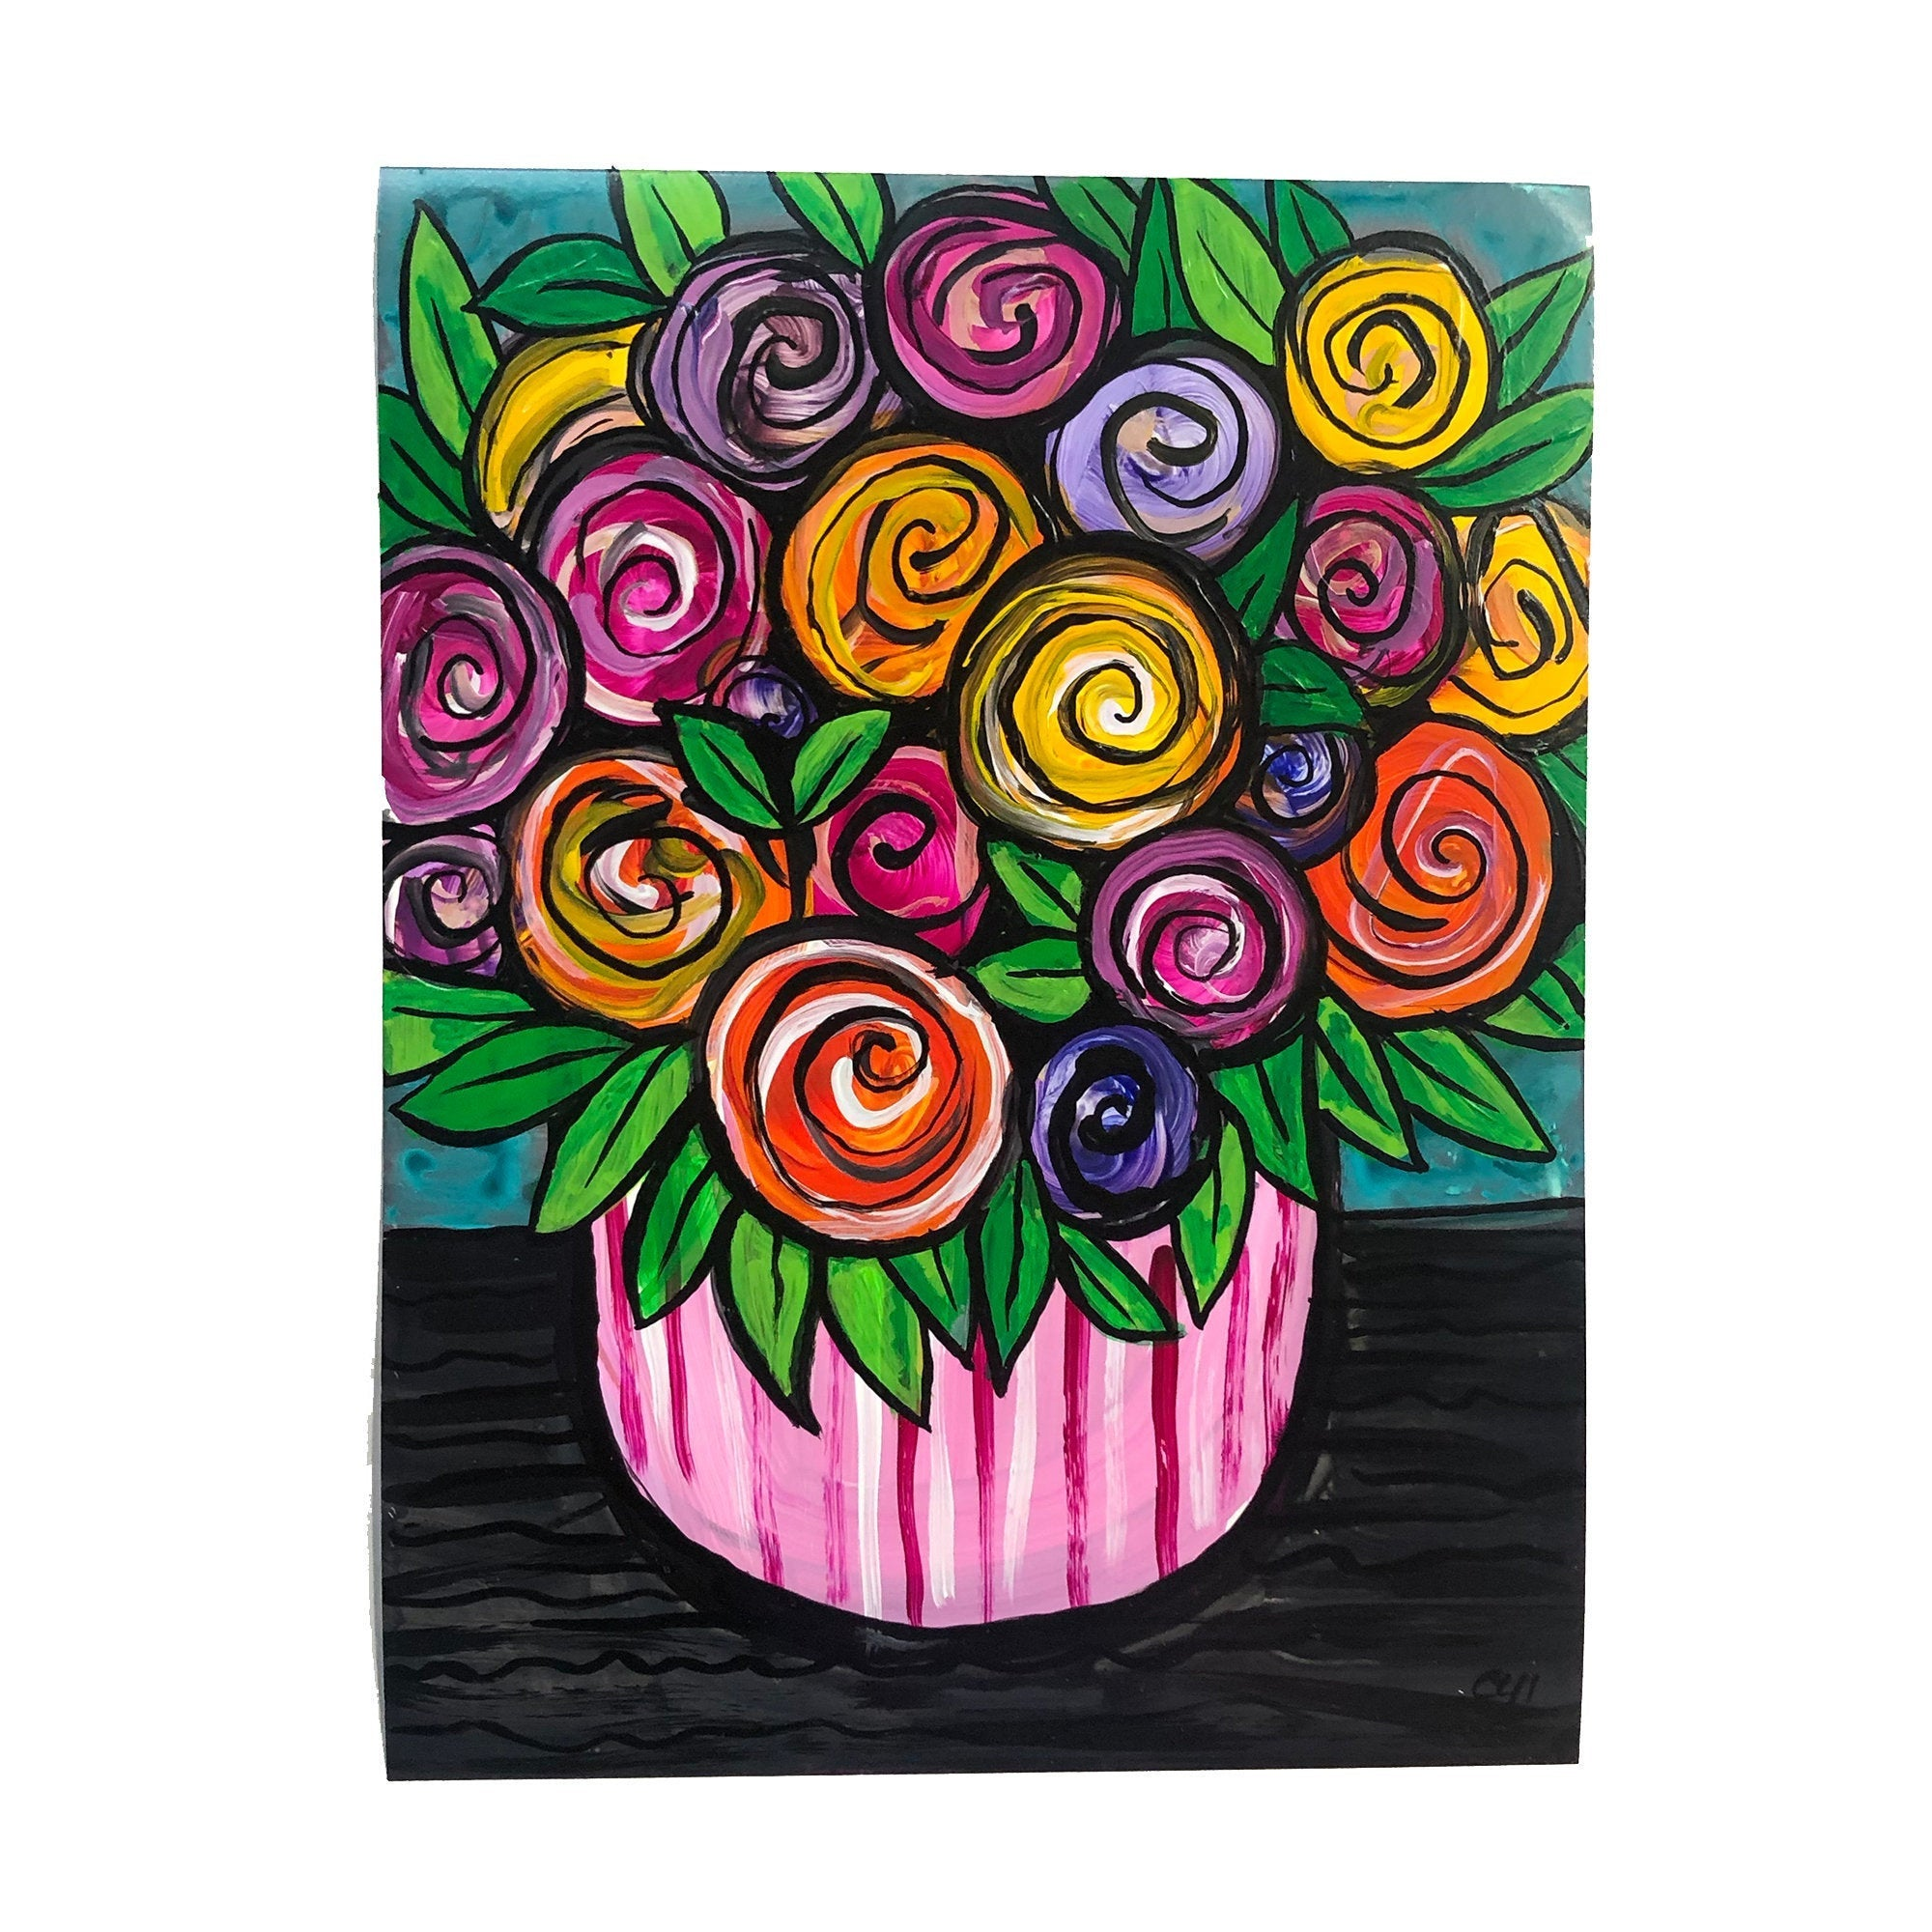 Whimsical Rose Painting on Paper - Colorful Unframed Art Work on Paper - 9x12 inches by Claudine Intner